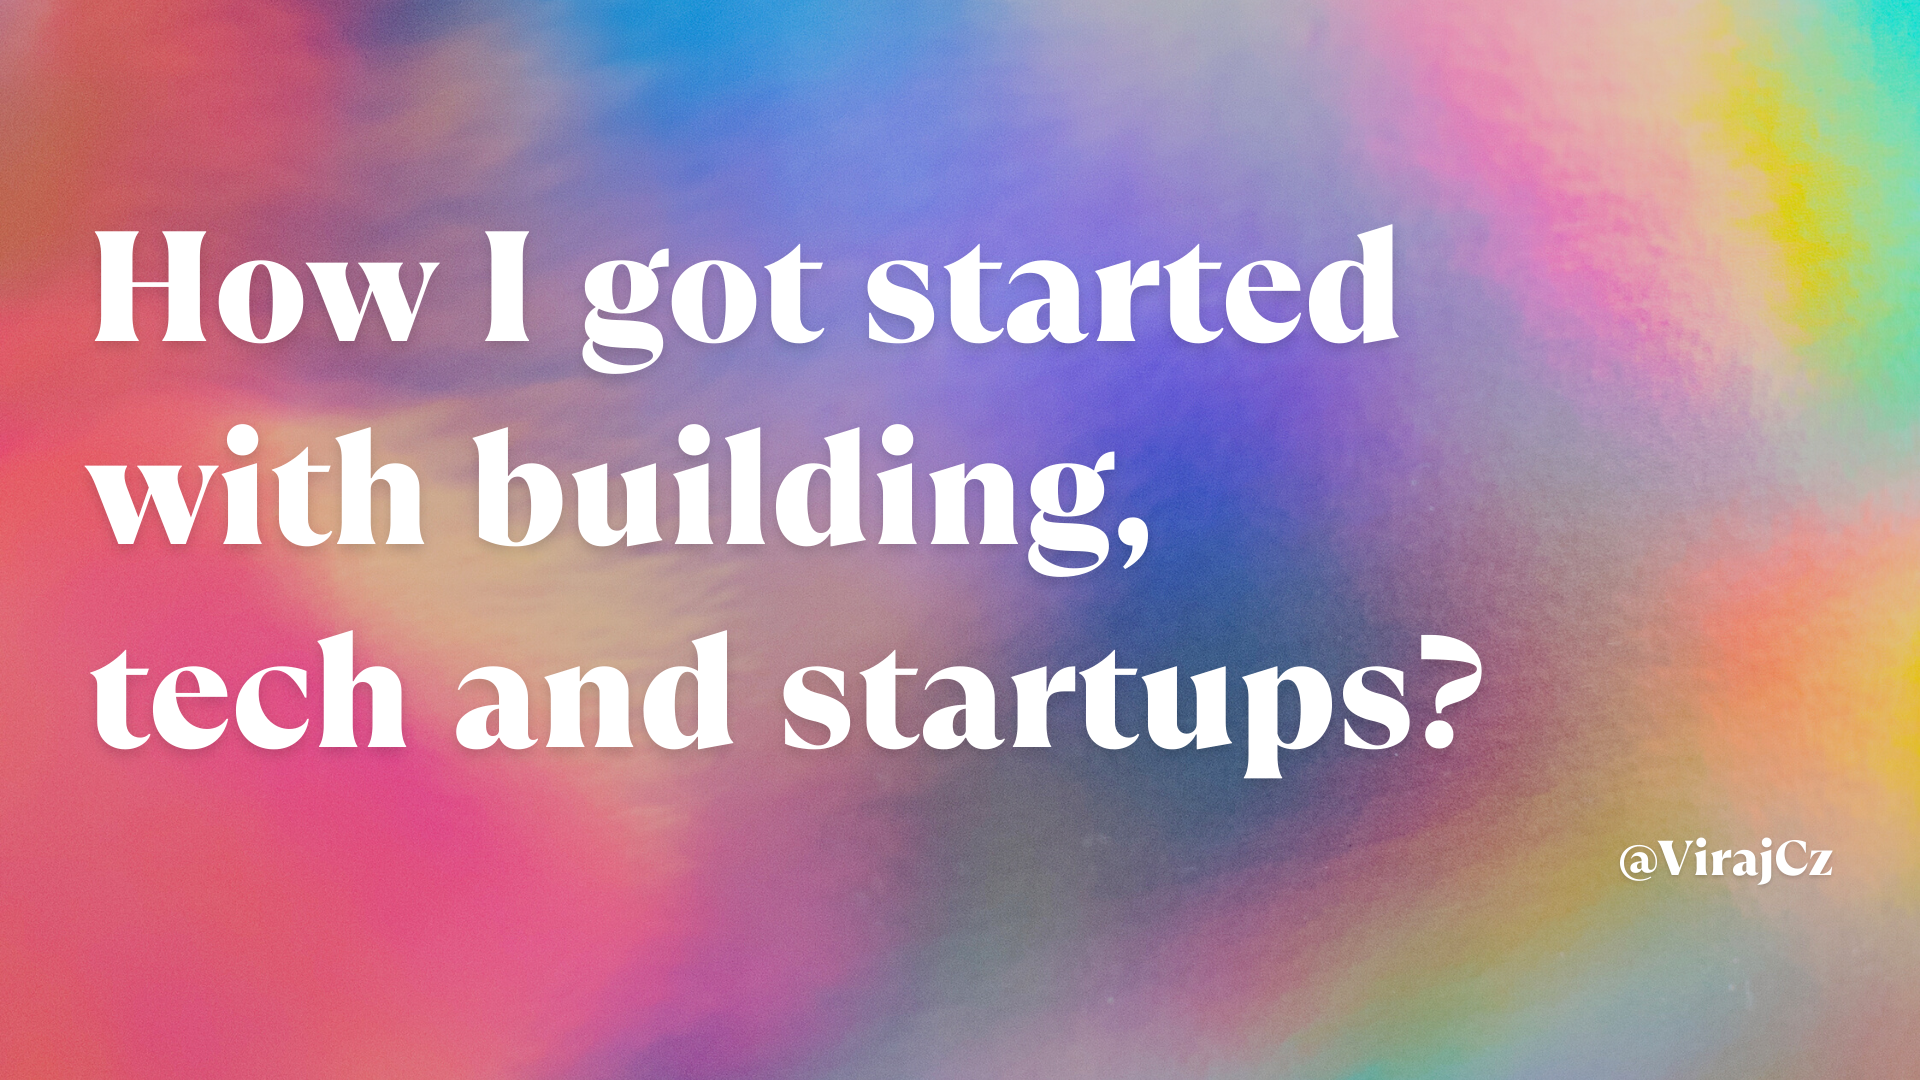 How I got started with building, tech and startups?